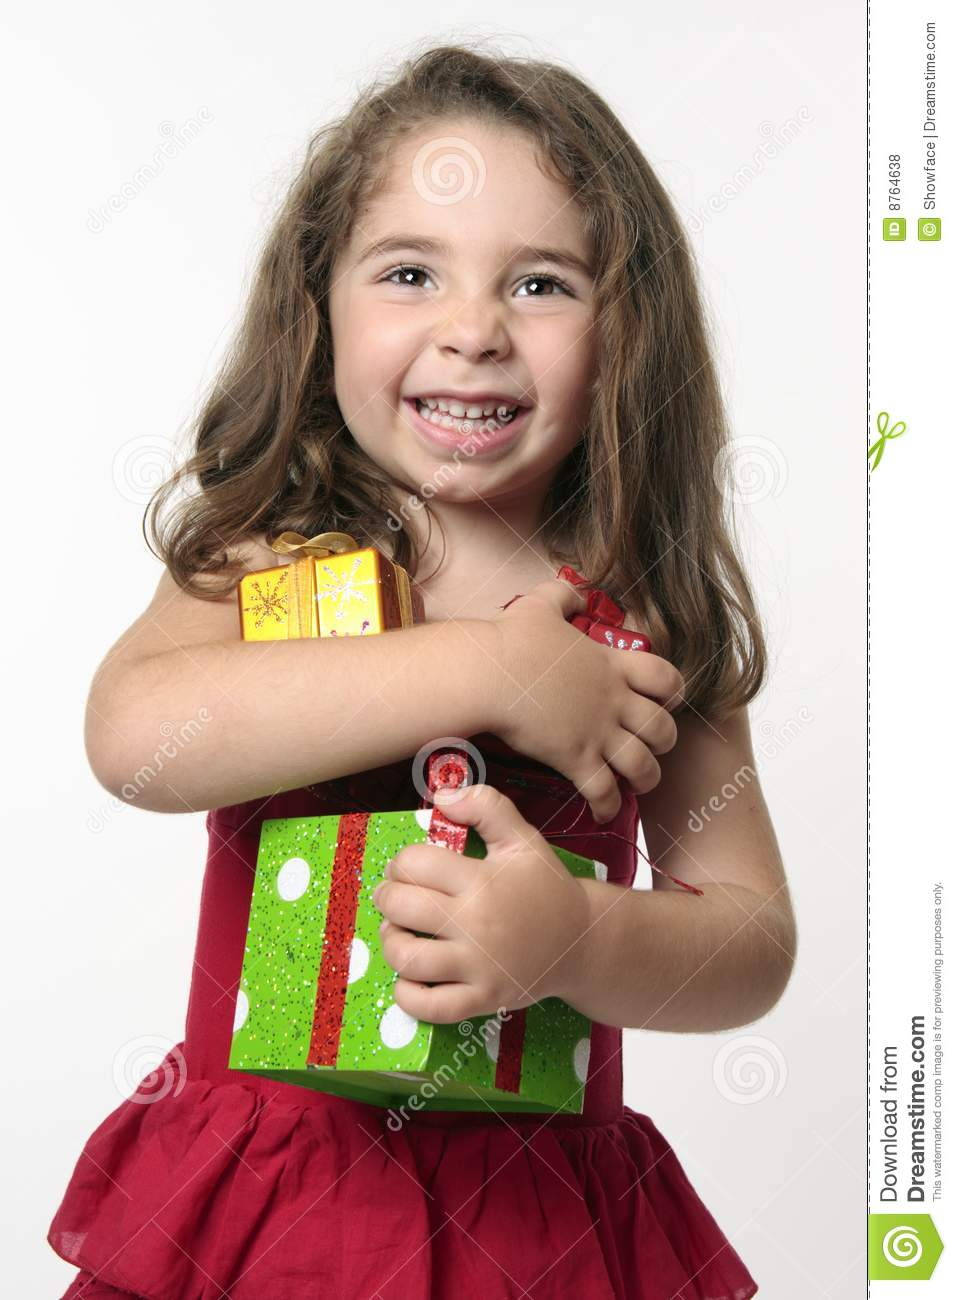 Jovial Happy Girl Child Holding Presents Royalty Free